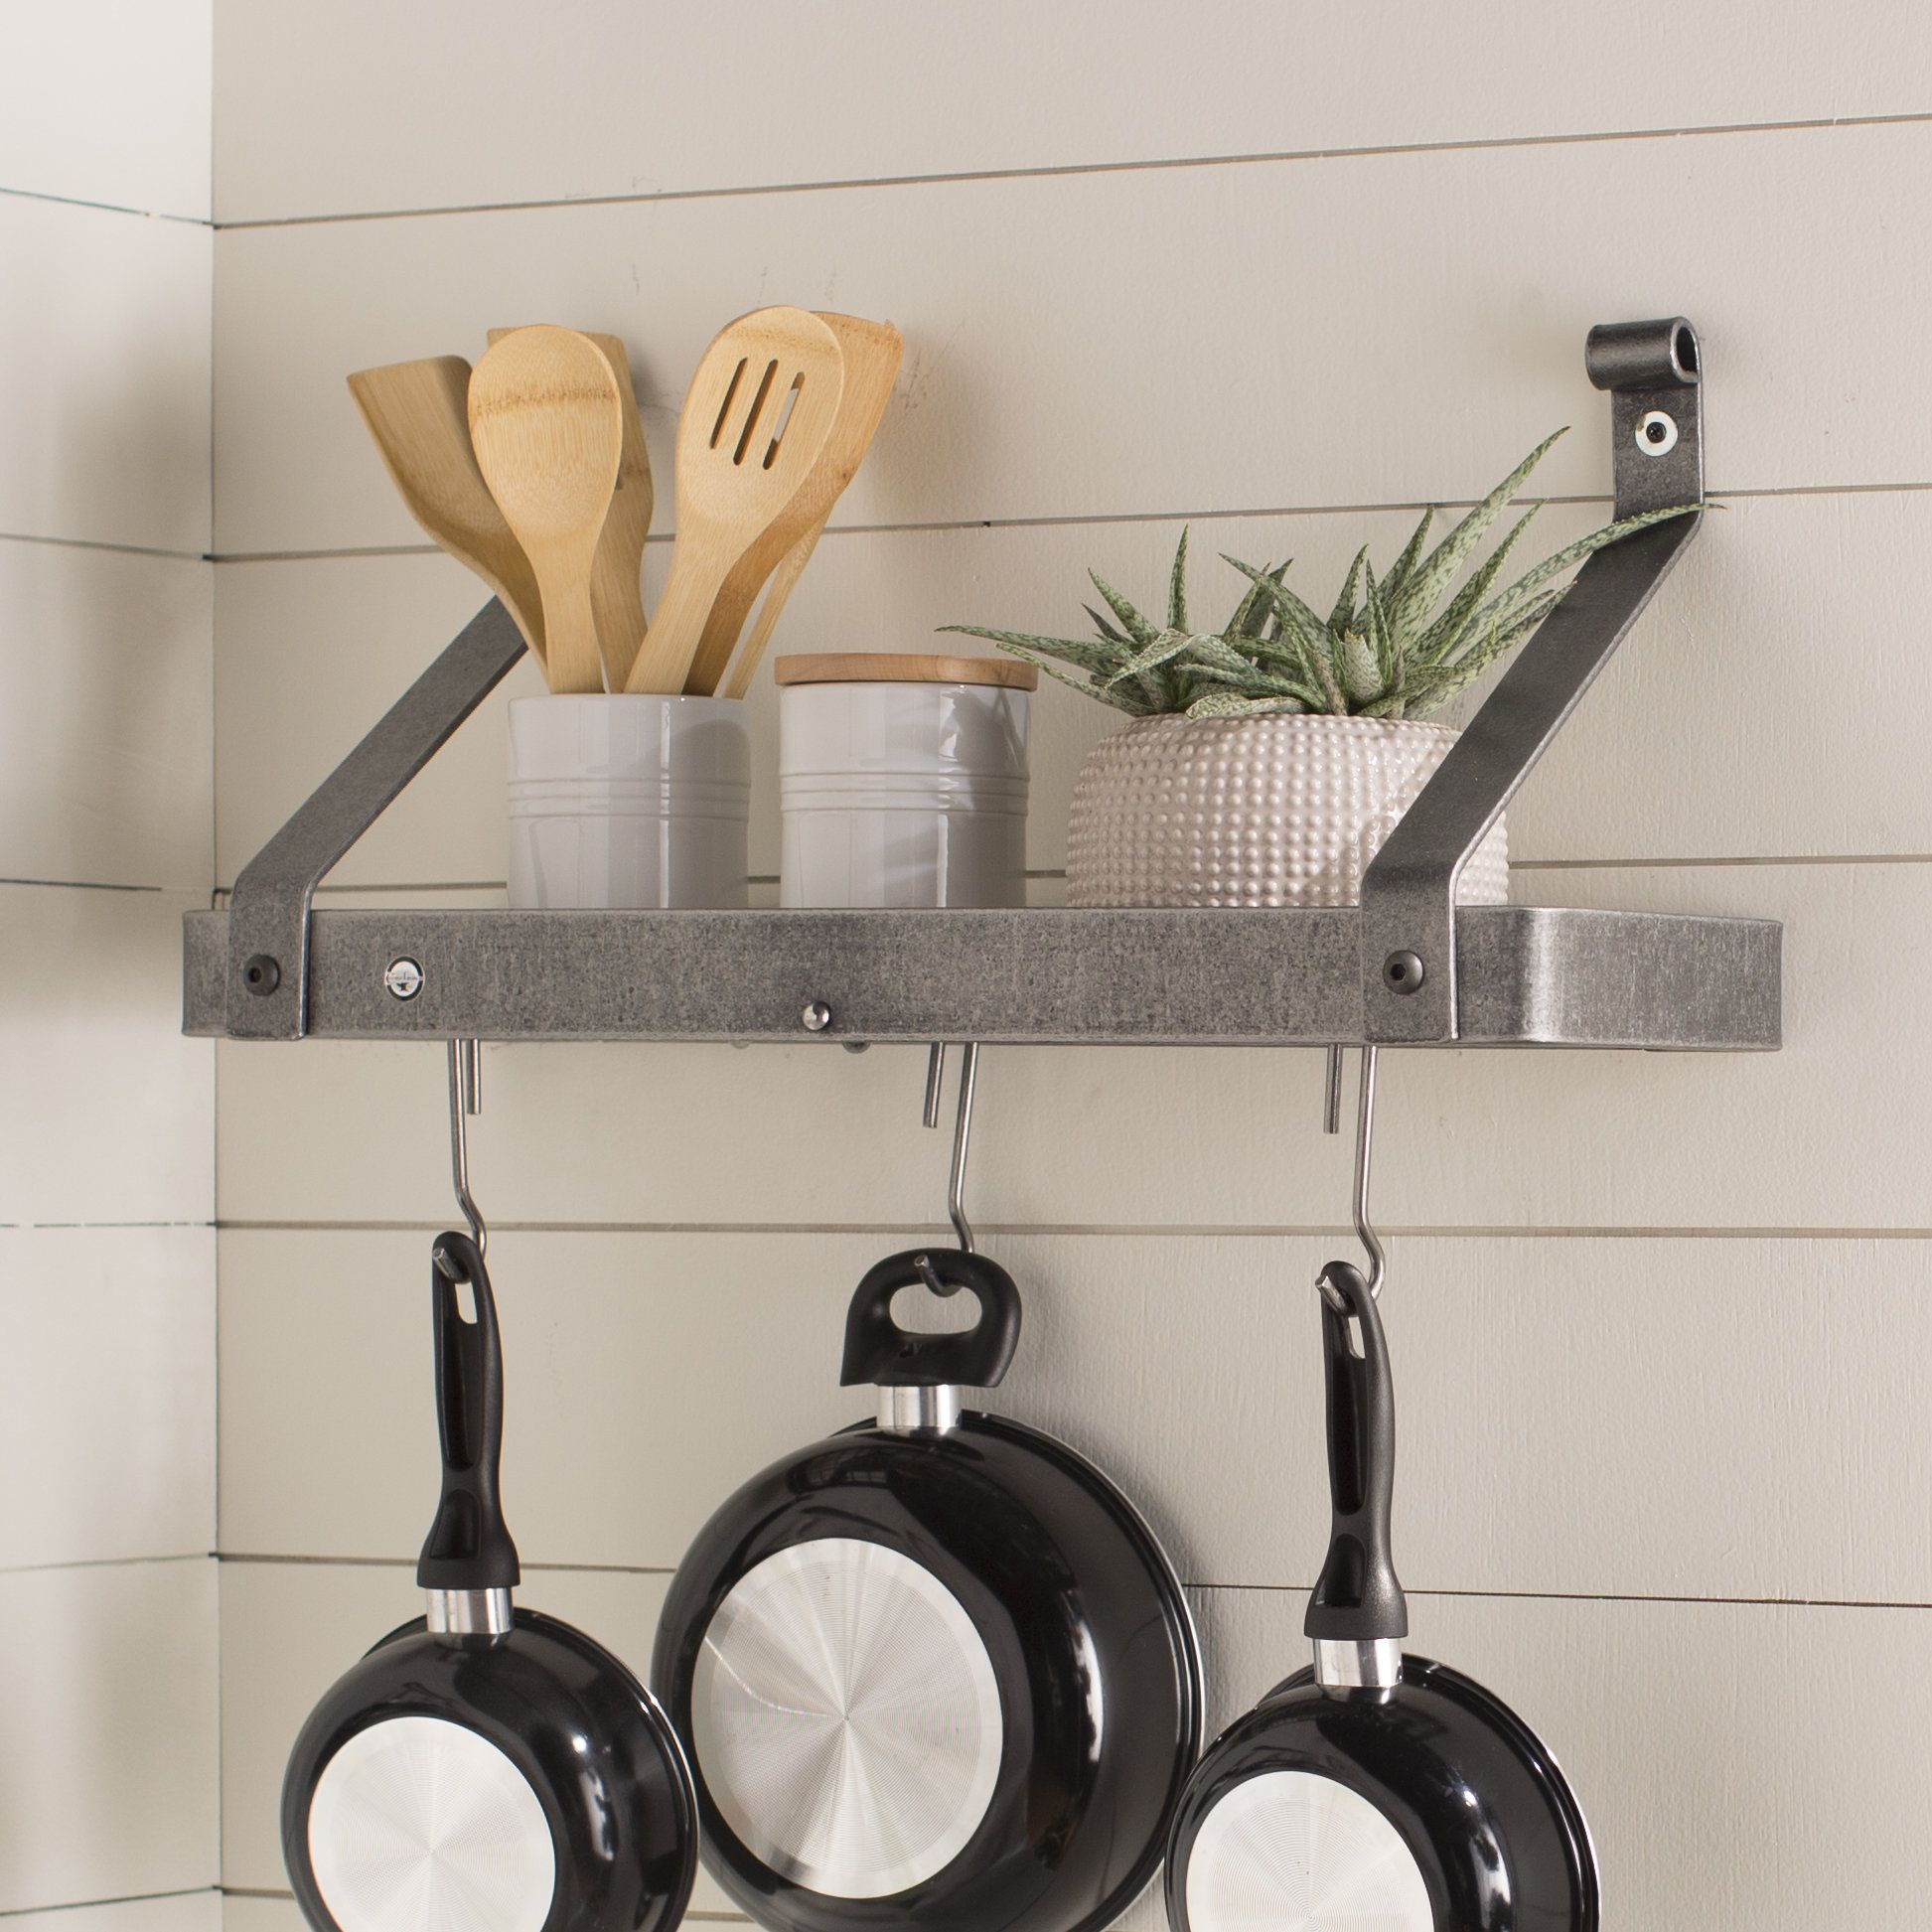 Ikea Pot Hanger Usa Handcrafted Gourmet Wall Mounted Pot Rack Products